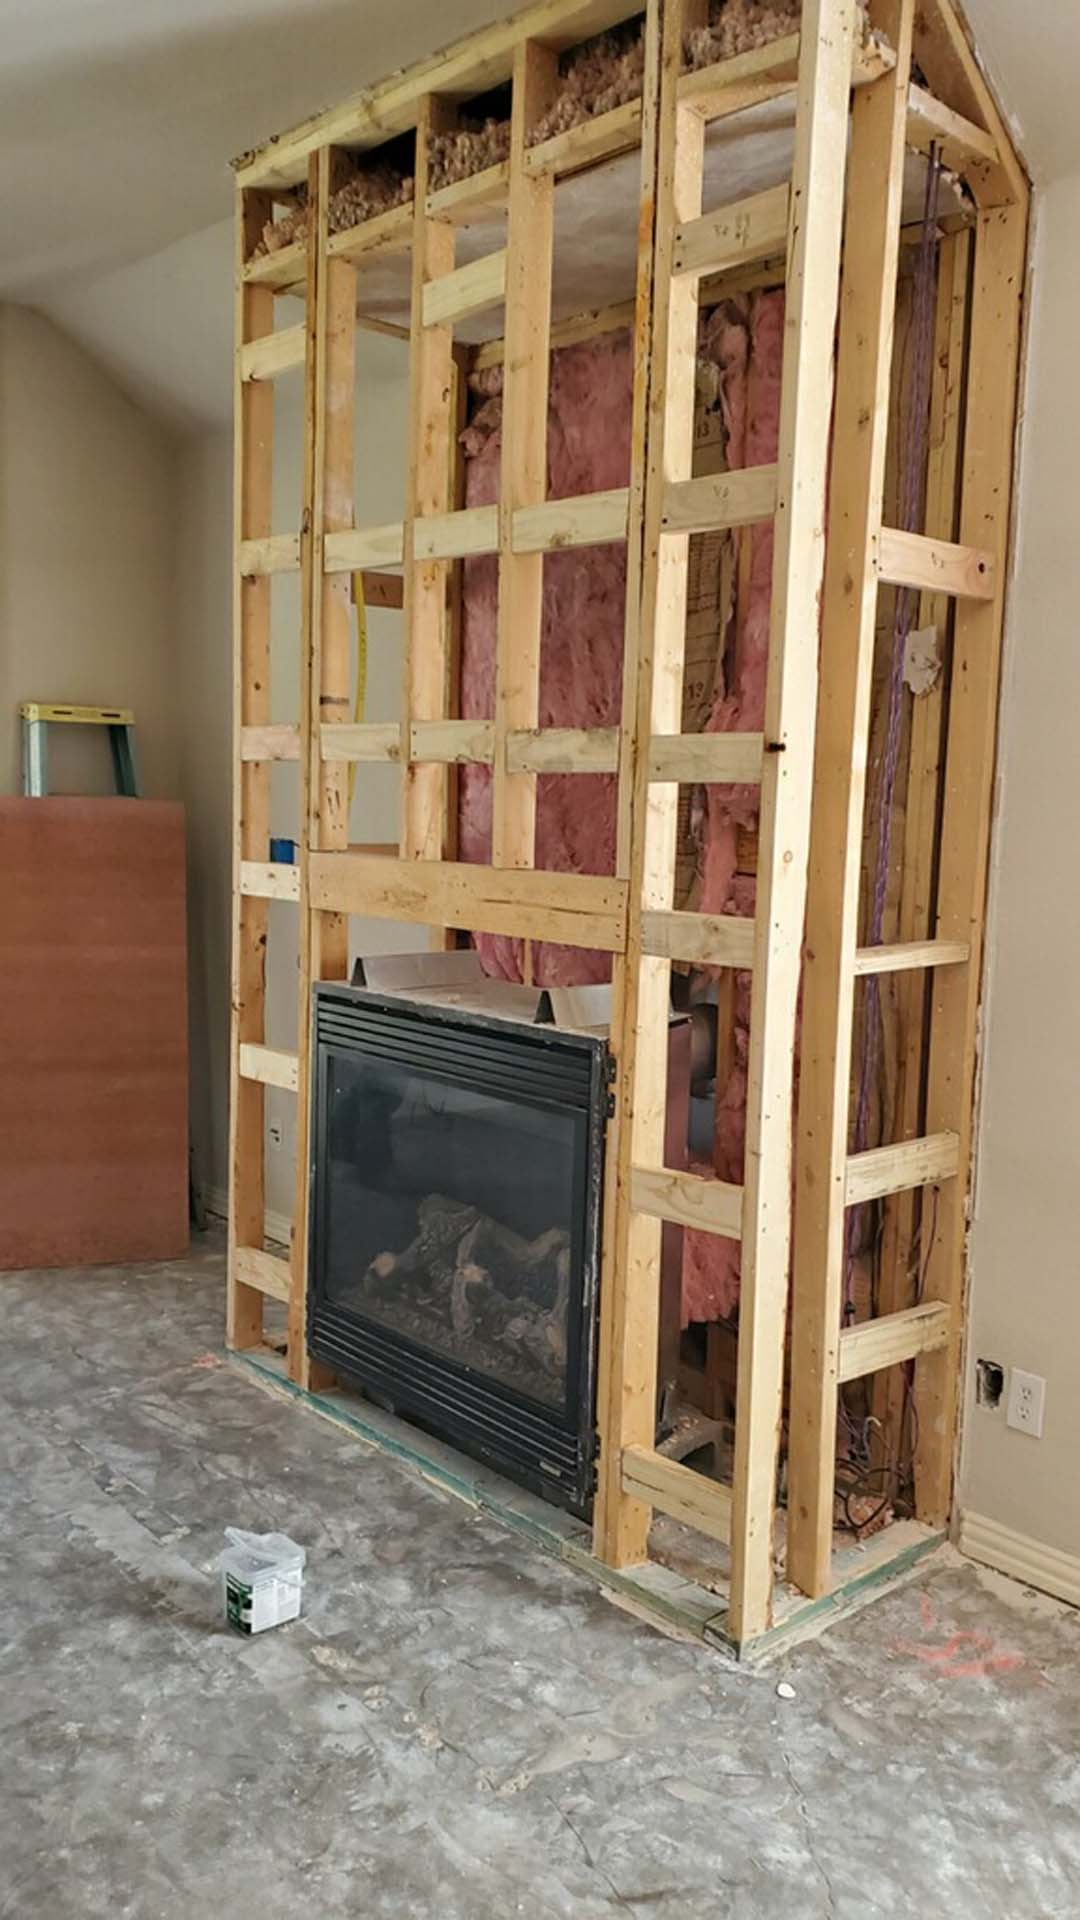 13 Before Fireplace Frame